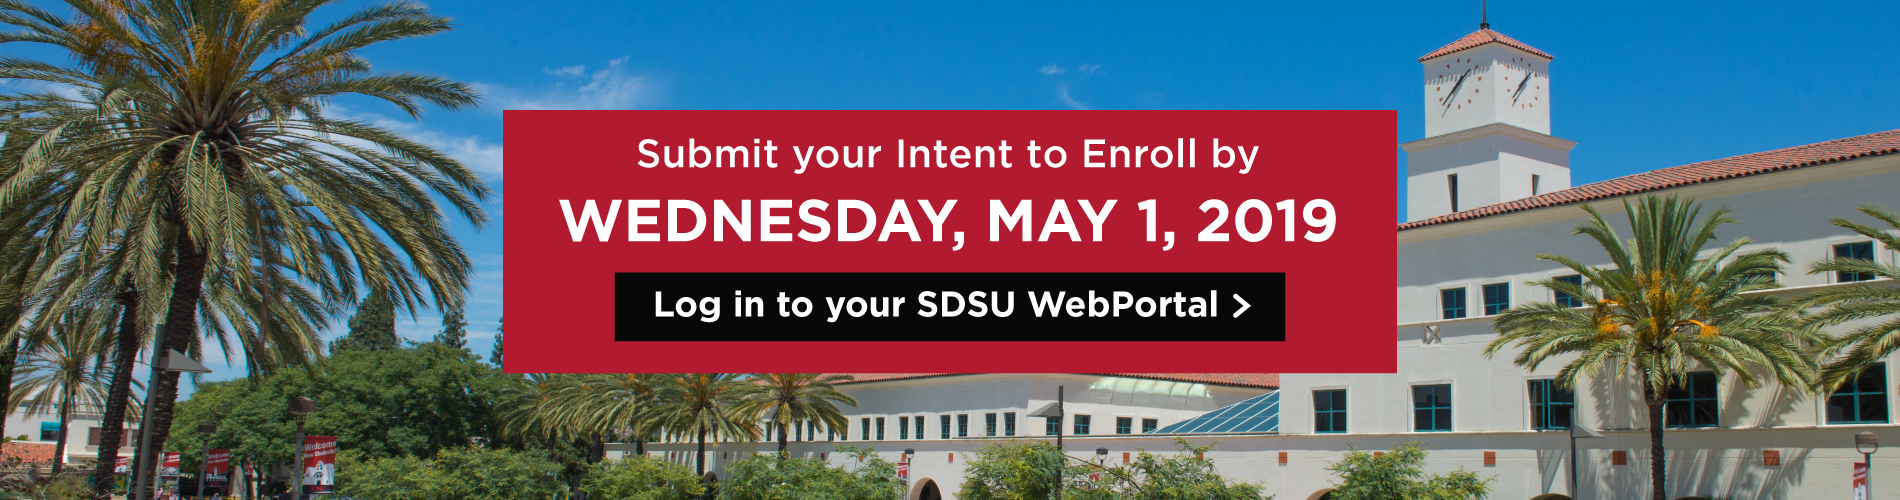 Submit your Intent to Enroll by Wednesday, May 1, 2019 in the SDSU WebPortal.